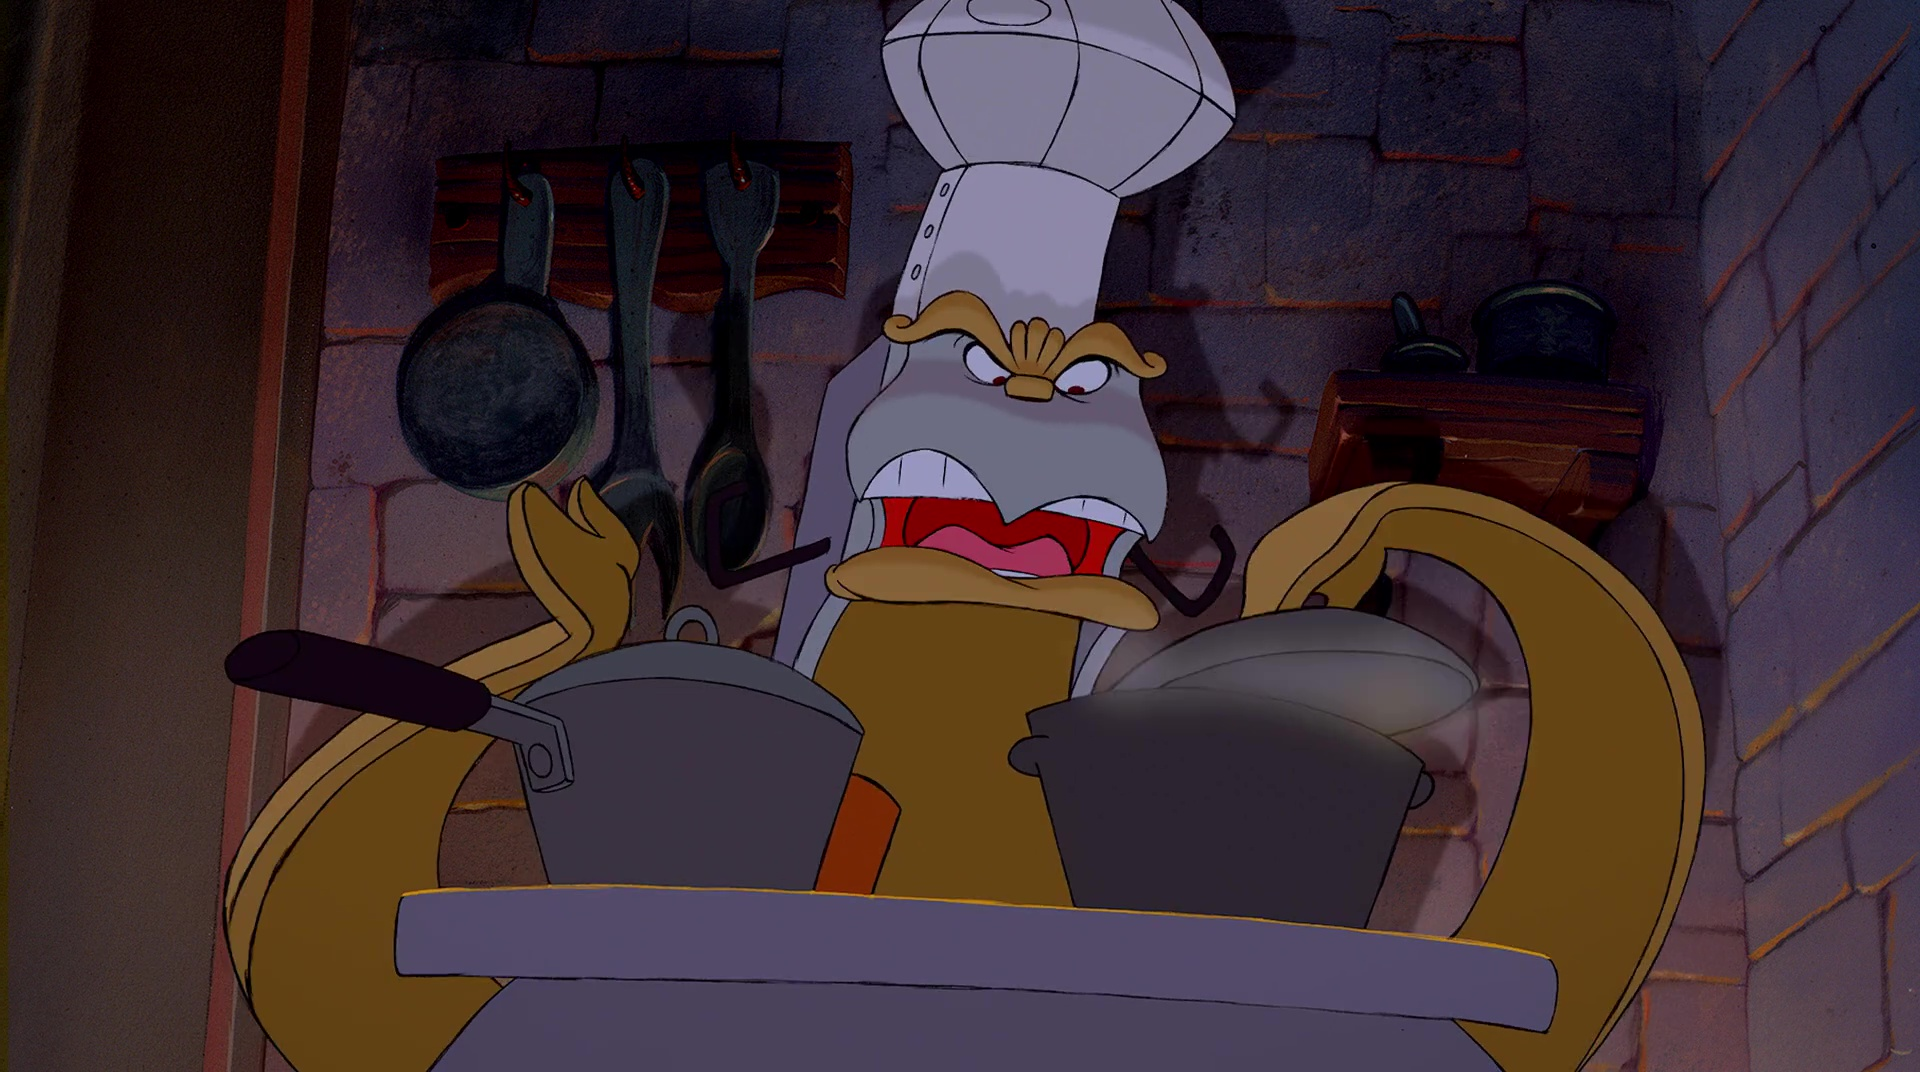 fourneau chef bouche stove personnage character disney la belle et la bête beauty and the beast